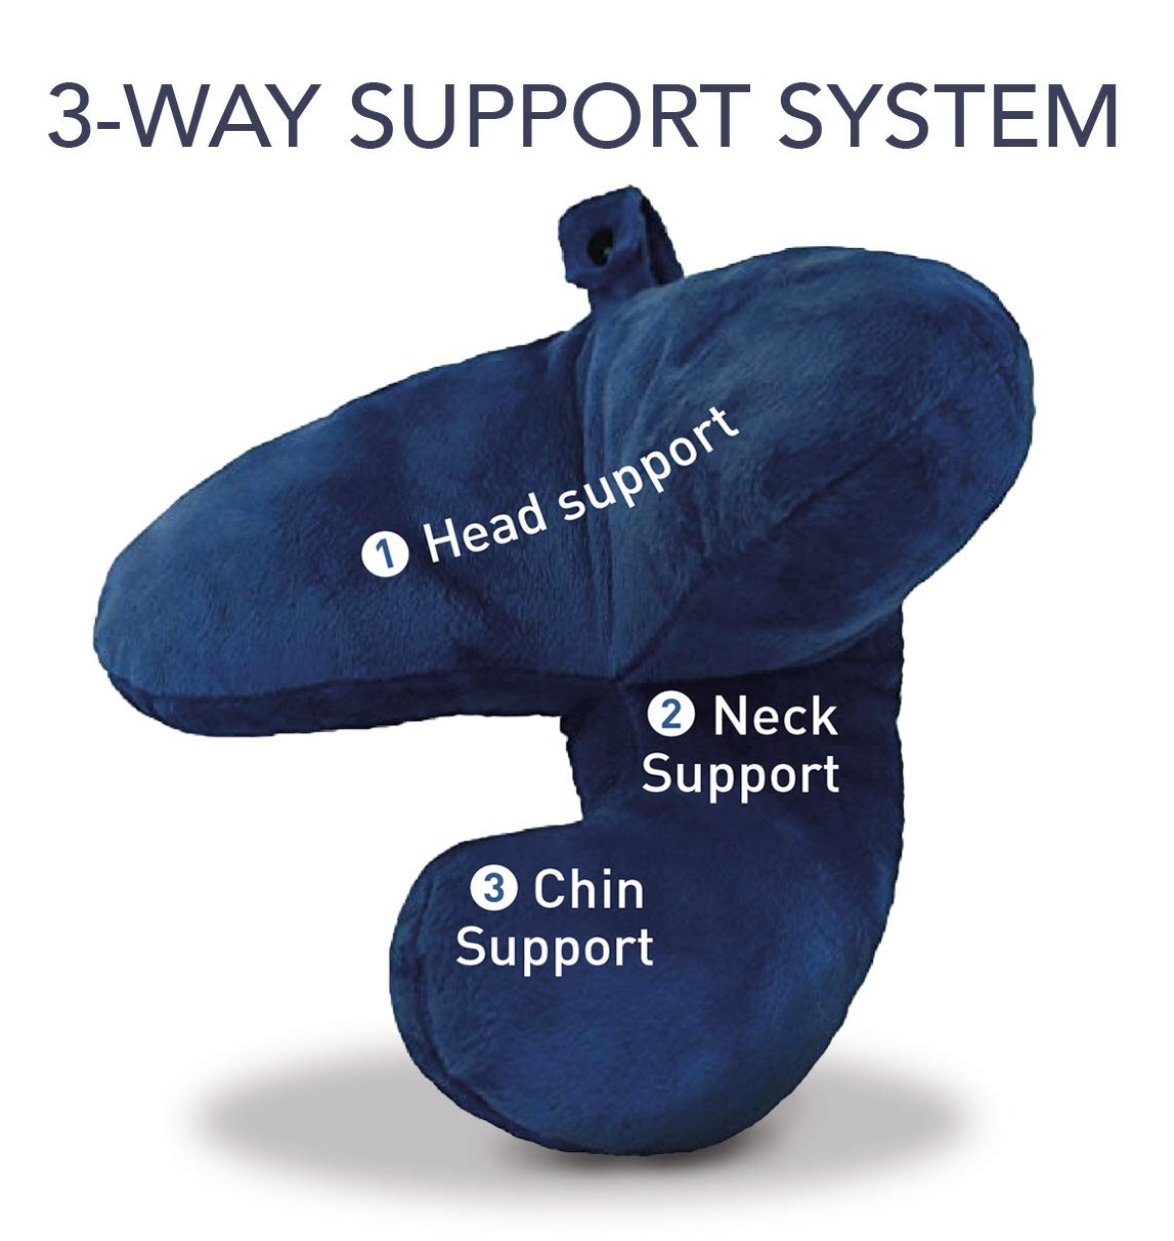 J-Pillow Travel Pillow 3-Way Support System